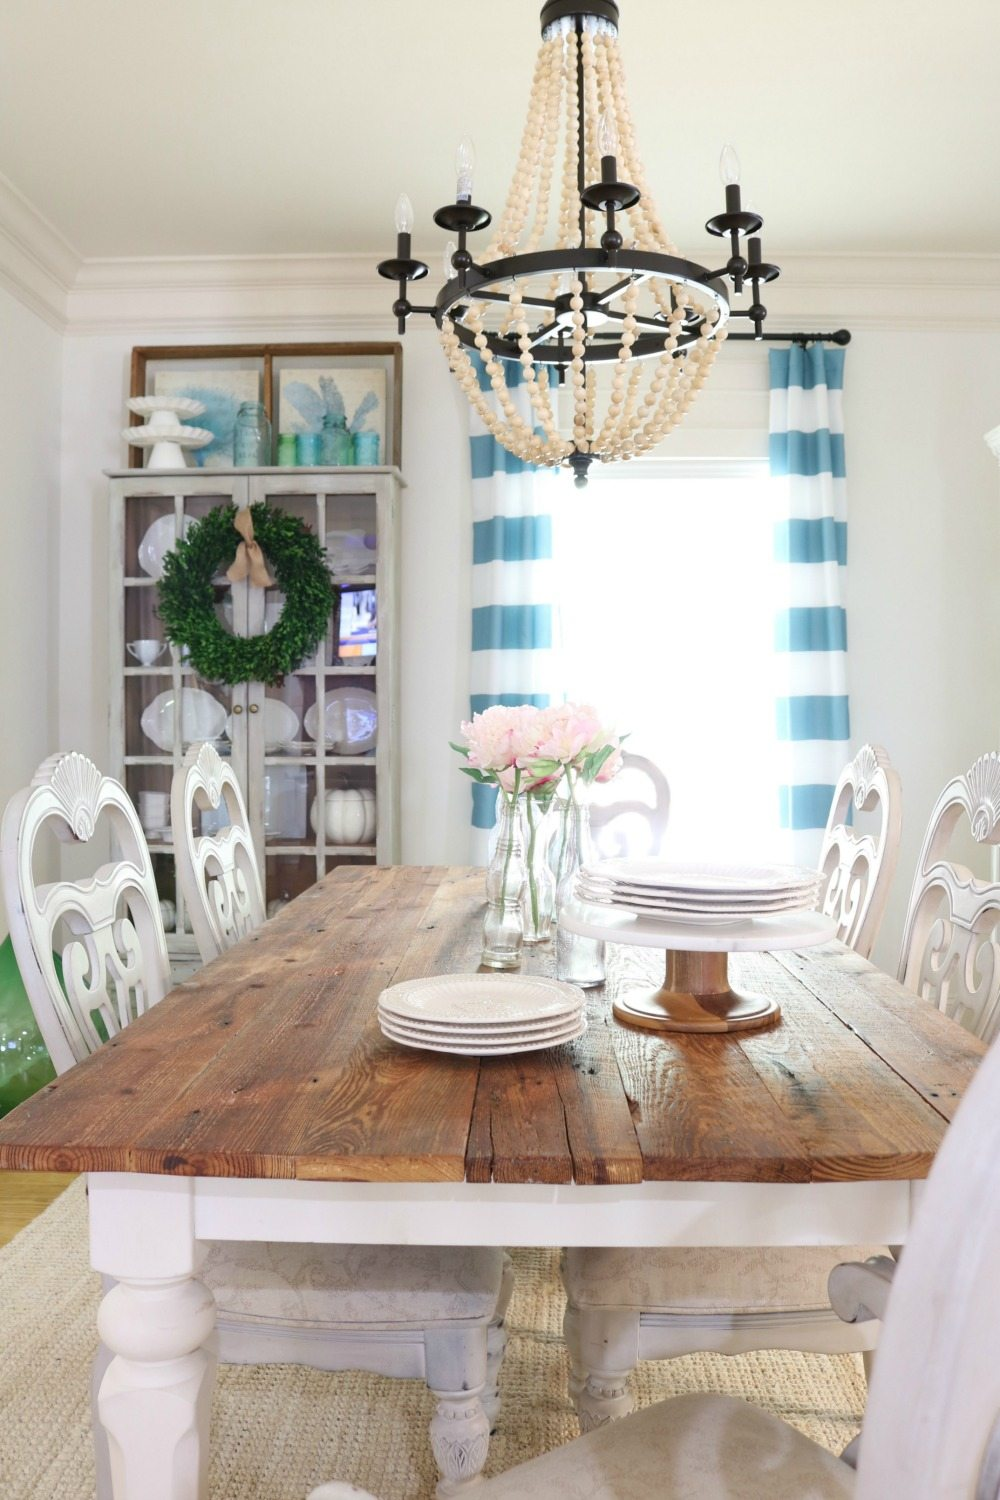 Barnwood table and striped curtains in the dining room